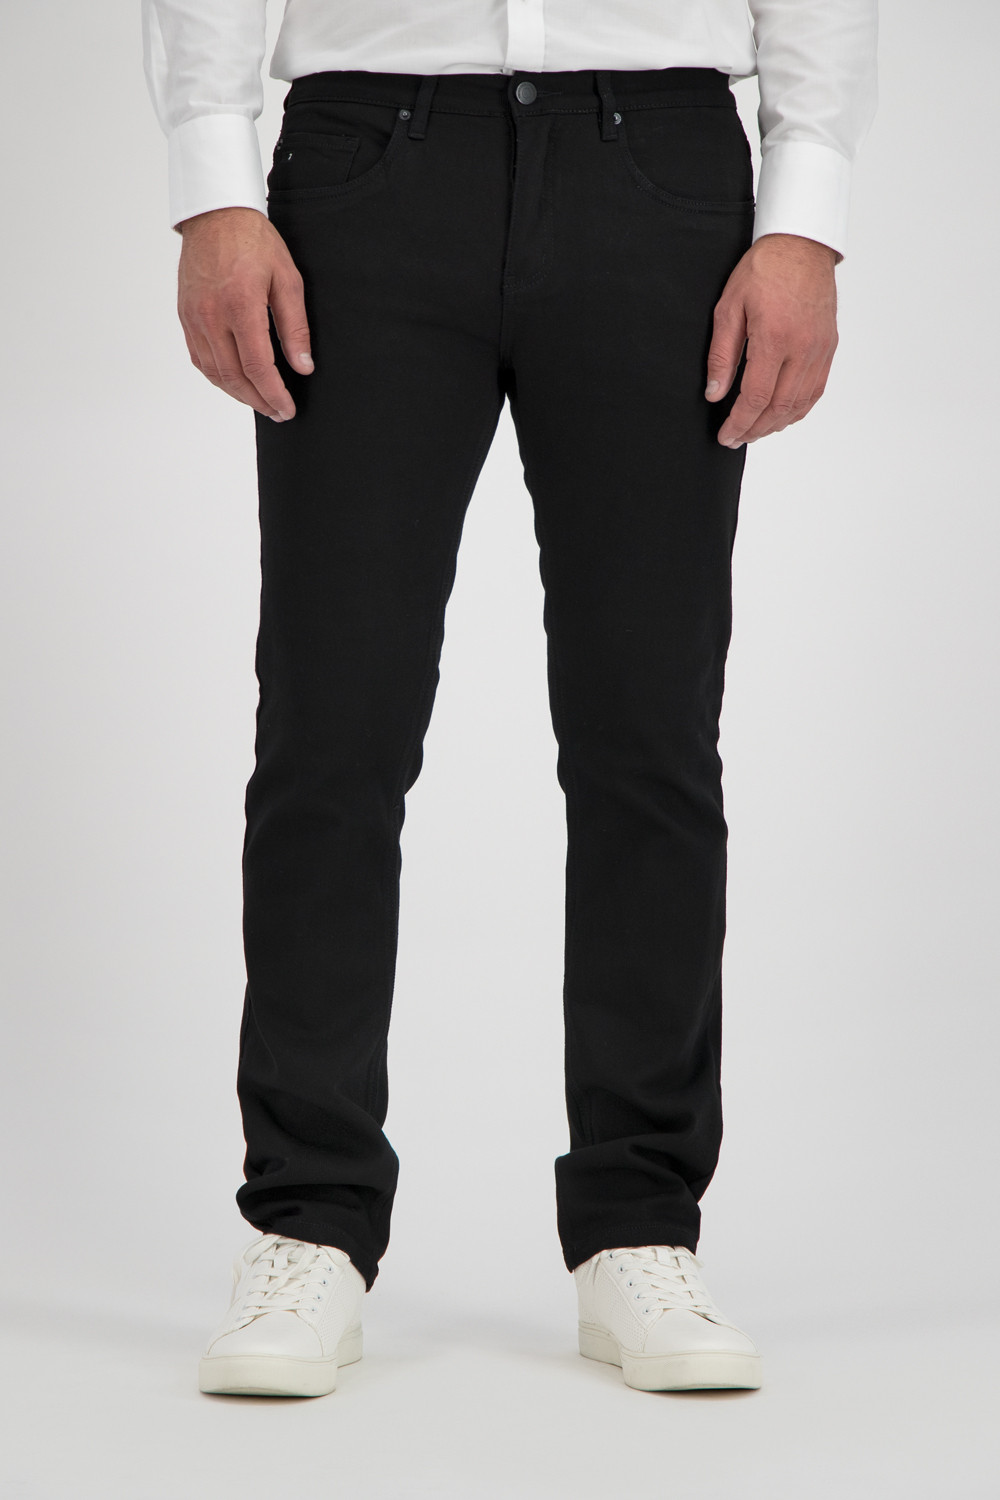 247 Jeans Palm T10 Black twill